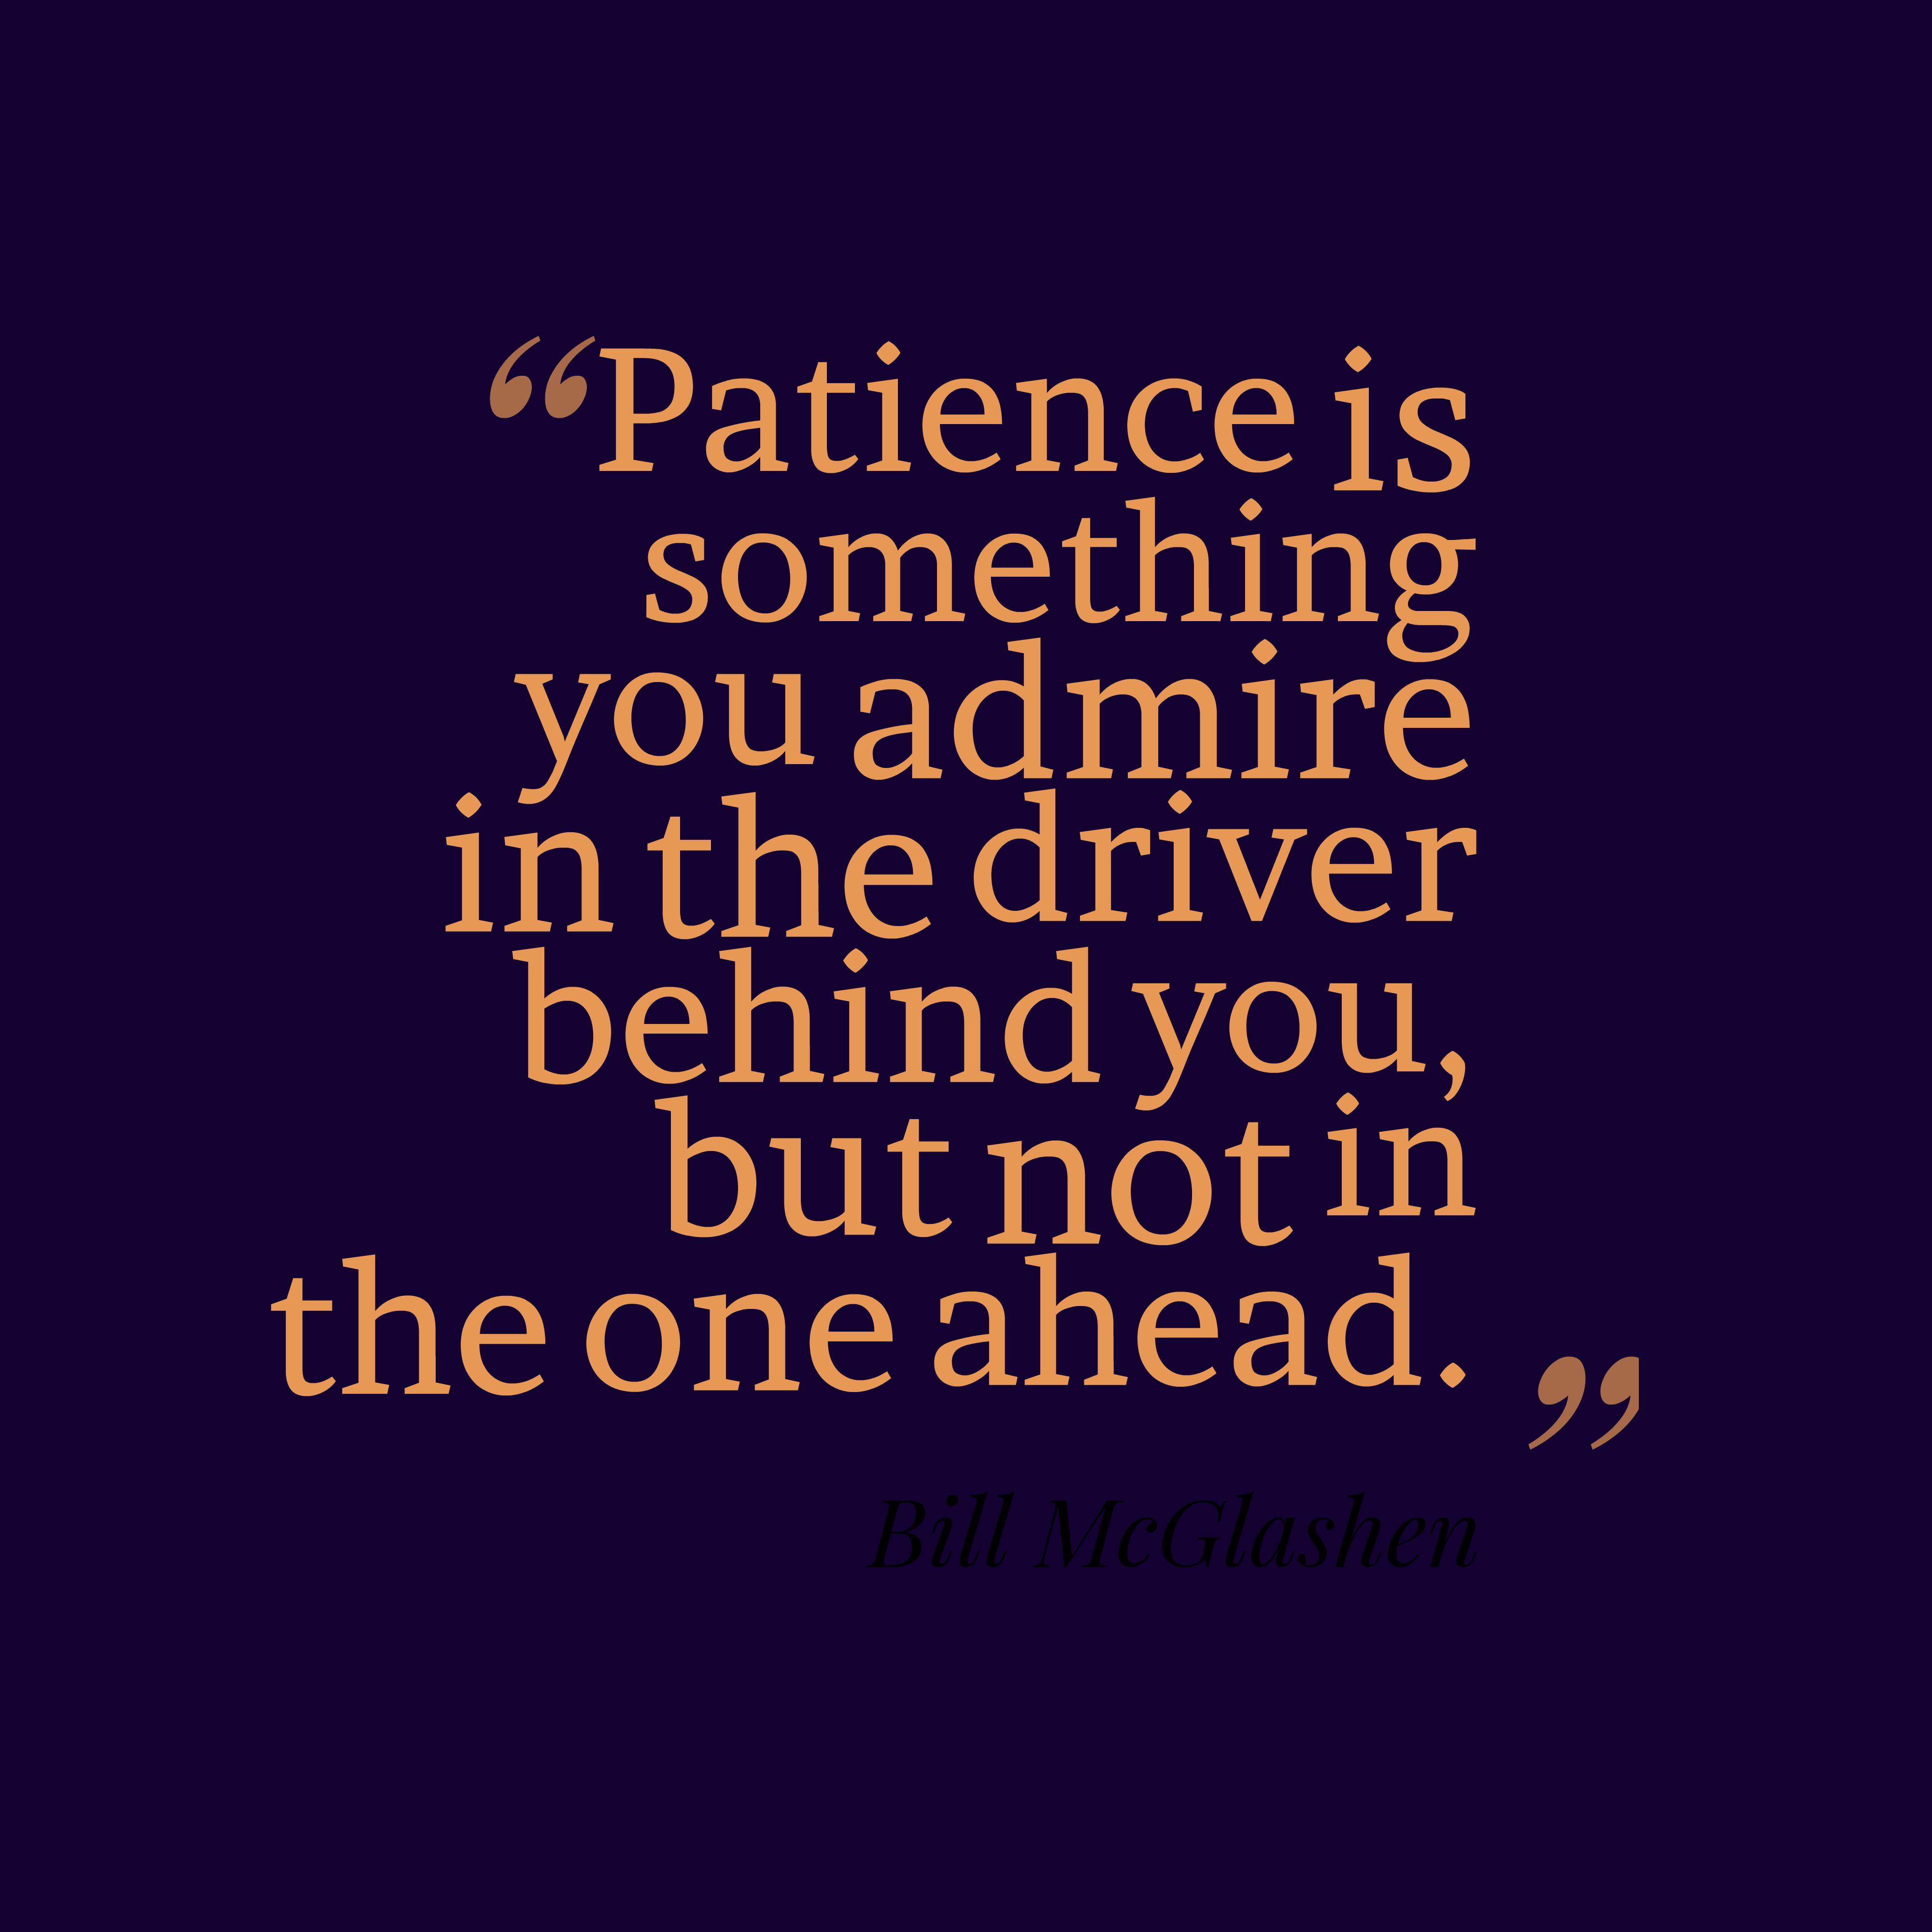 Quotes image of Patience is something you admire in the driver behind you, but not in the one ahead.